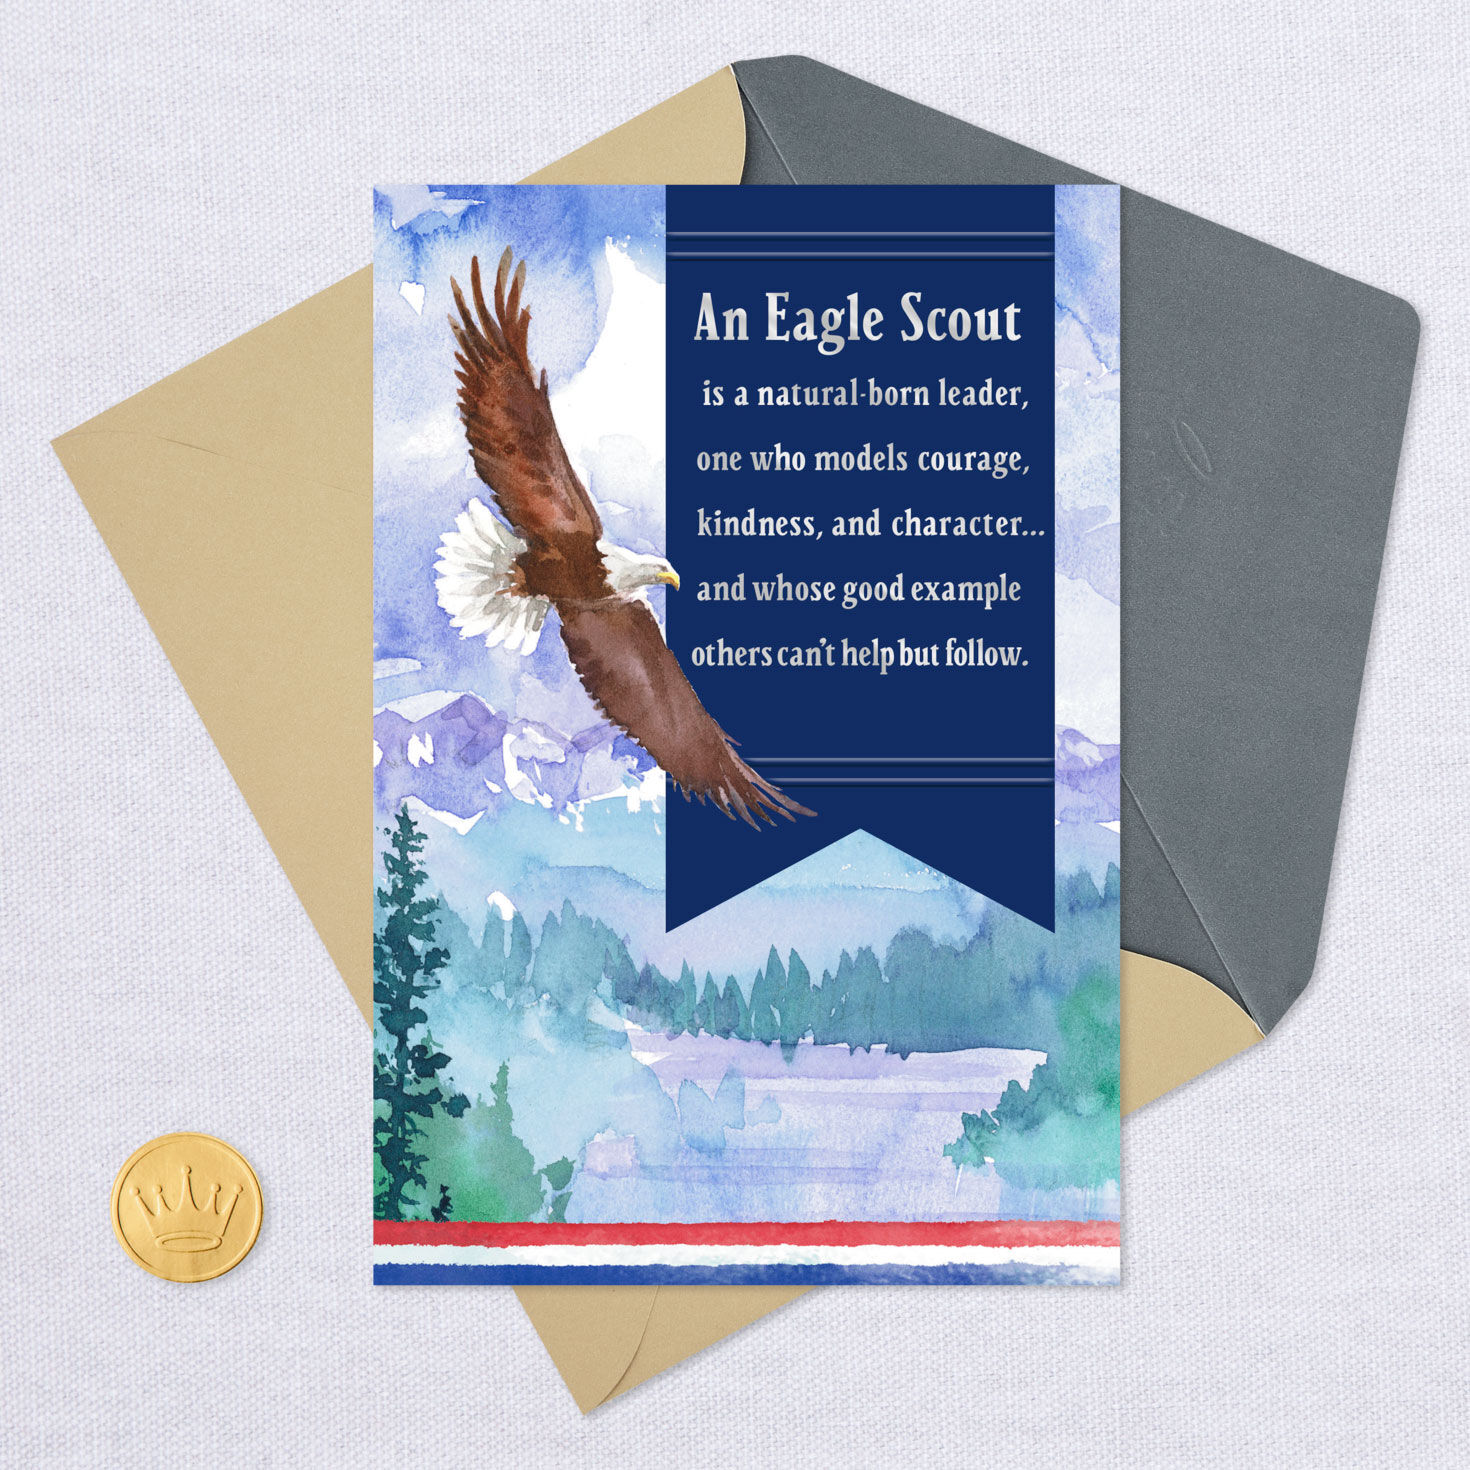 photograph about Eagle Scout Congratulations Card Printable titled A Design of Temperament Eagle Scout Congratulations Card